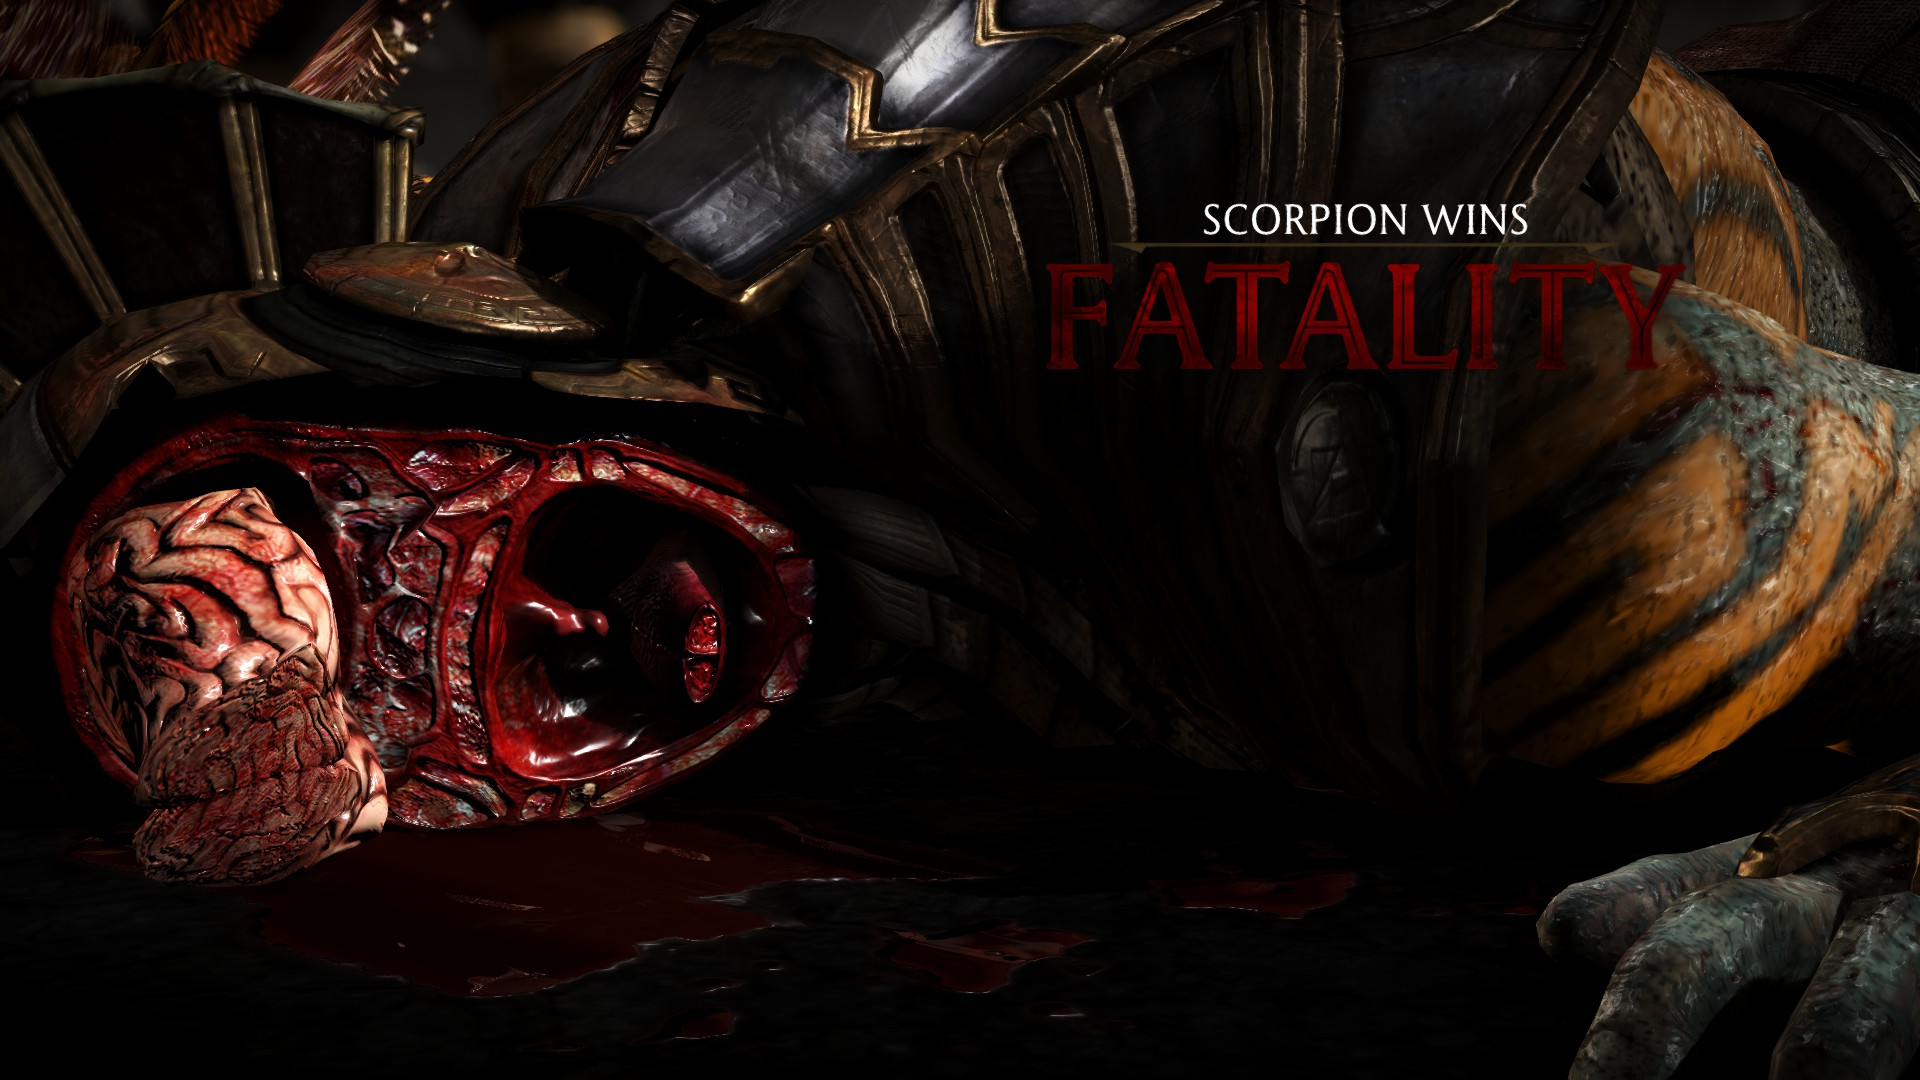 The fatalities are almost as gruesome as the port job.